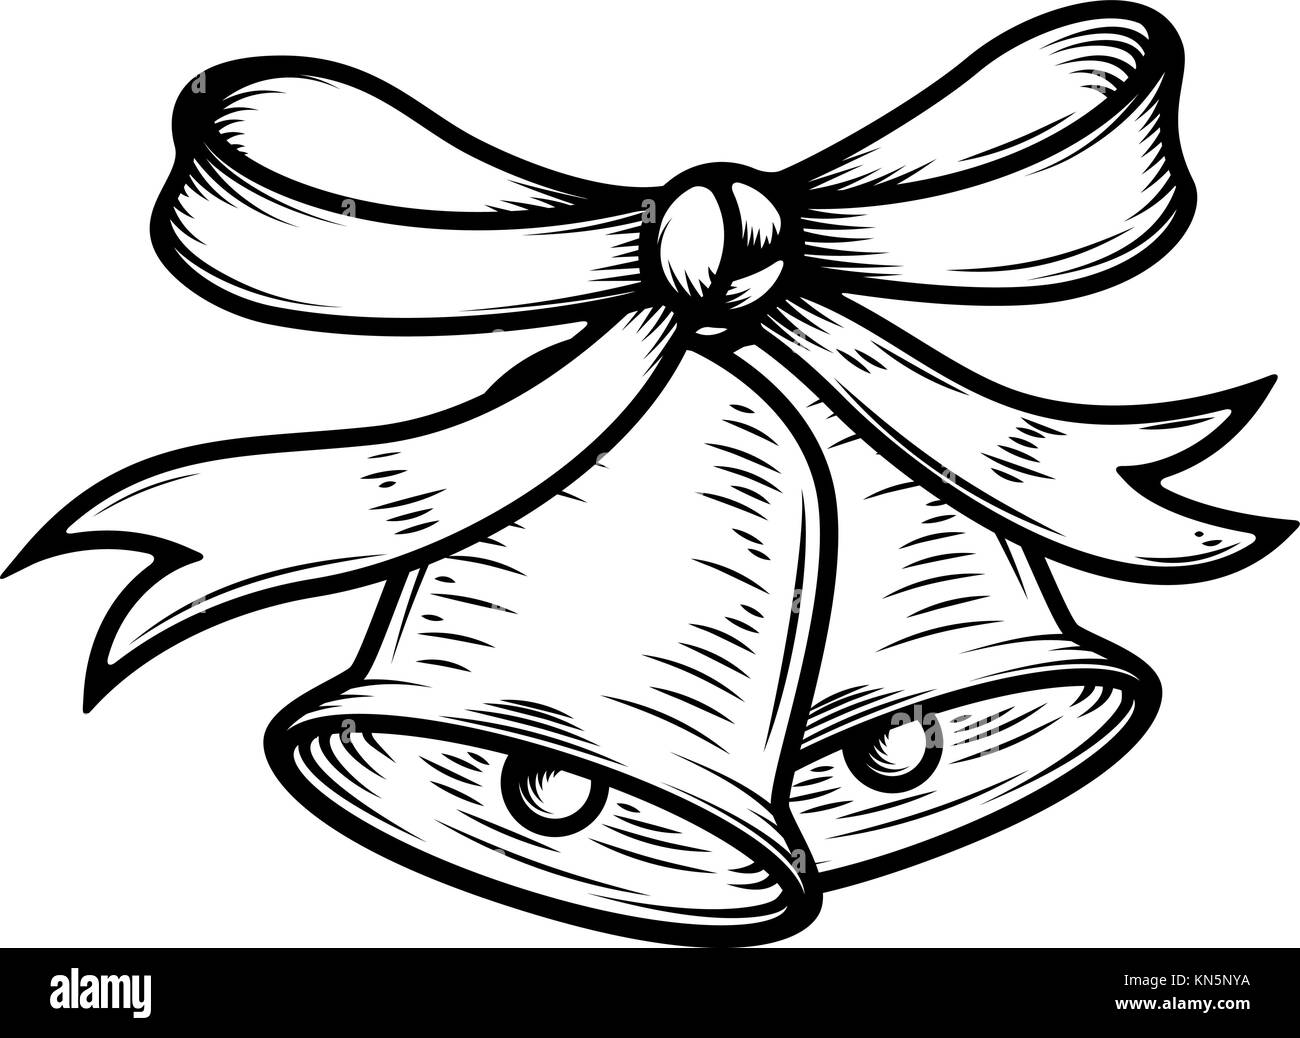 gold bow on black background stock vector images page 2 alamy Clear Background with Texture christmas bells illustration on white background design elements for poster card banner